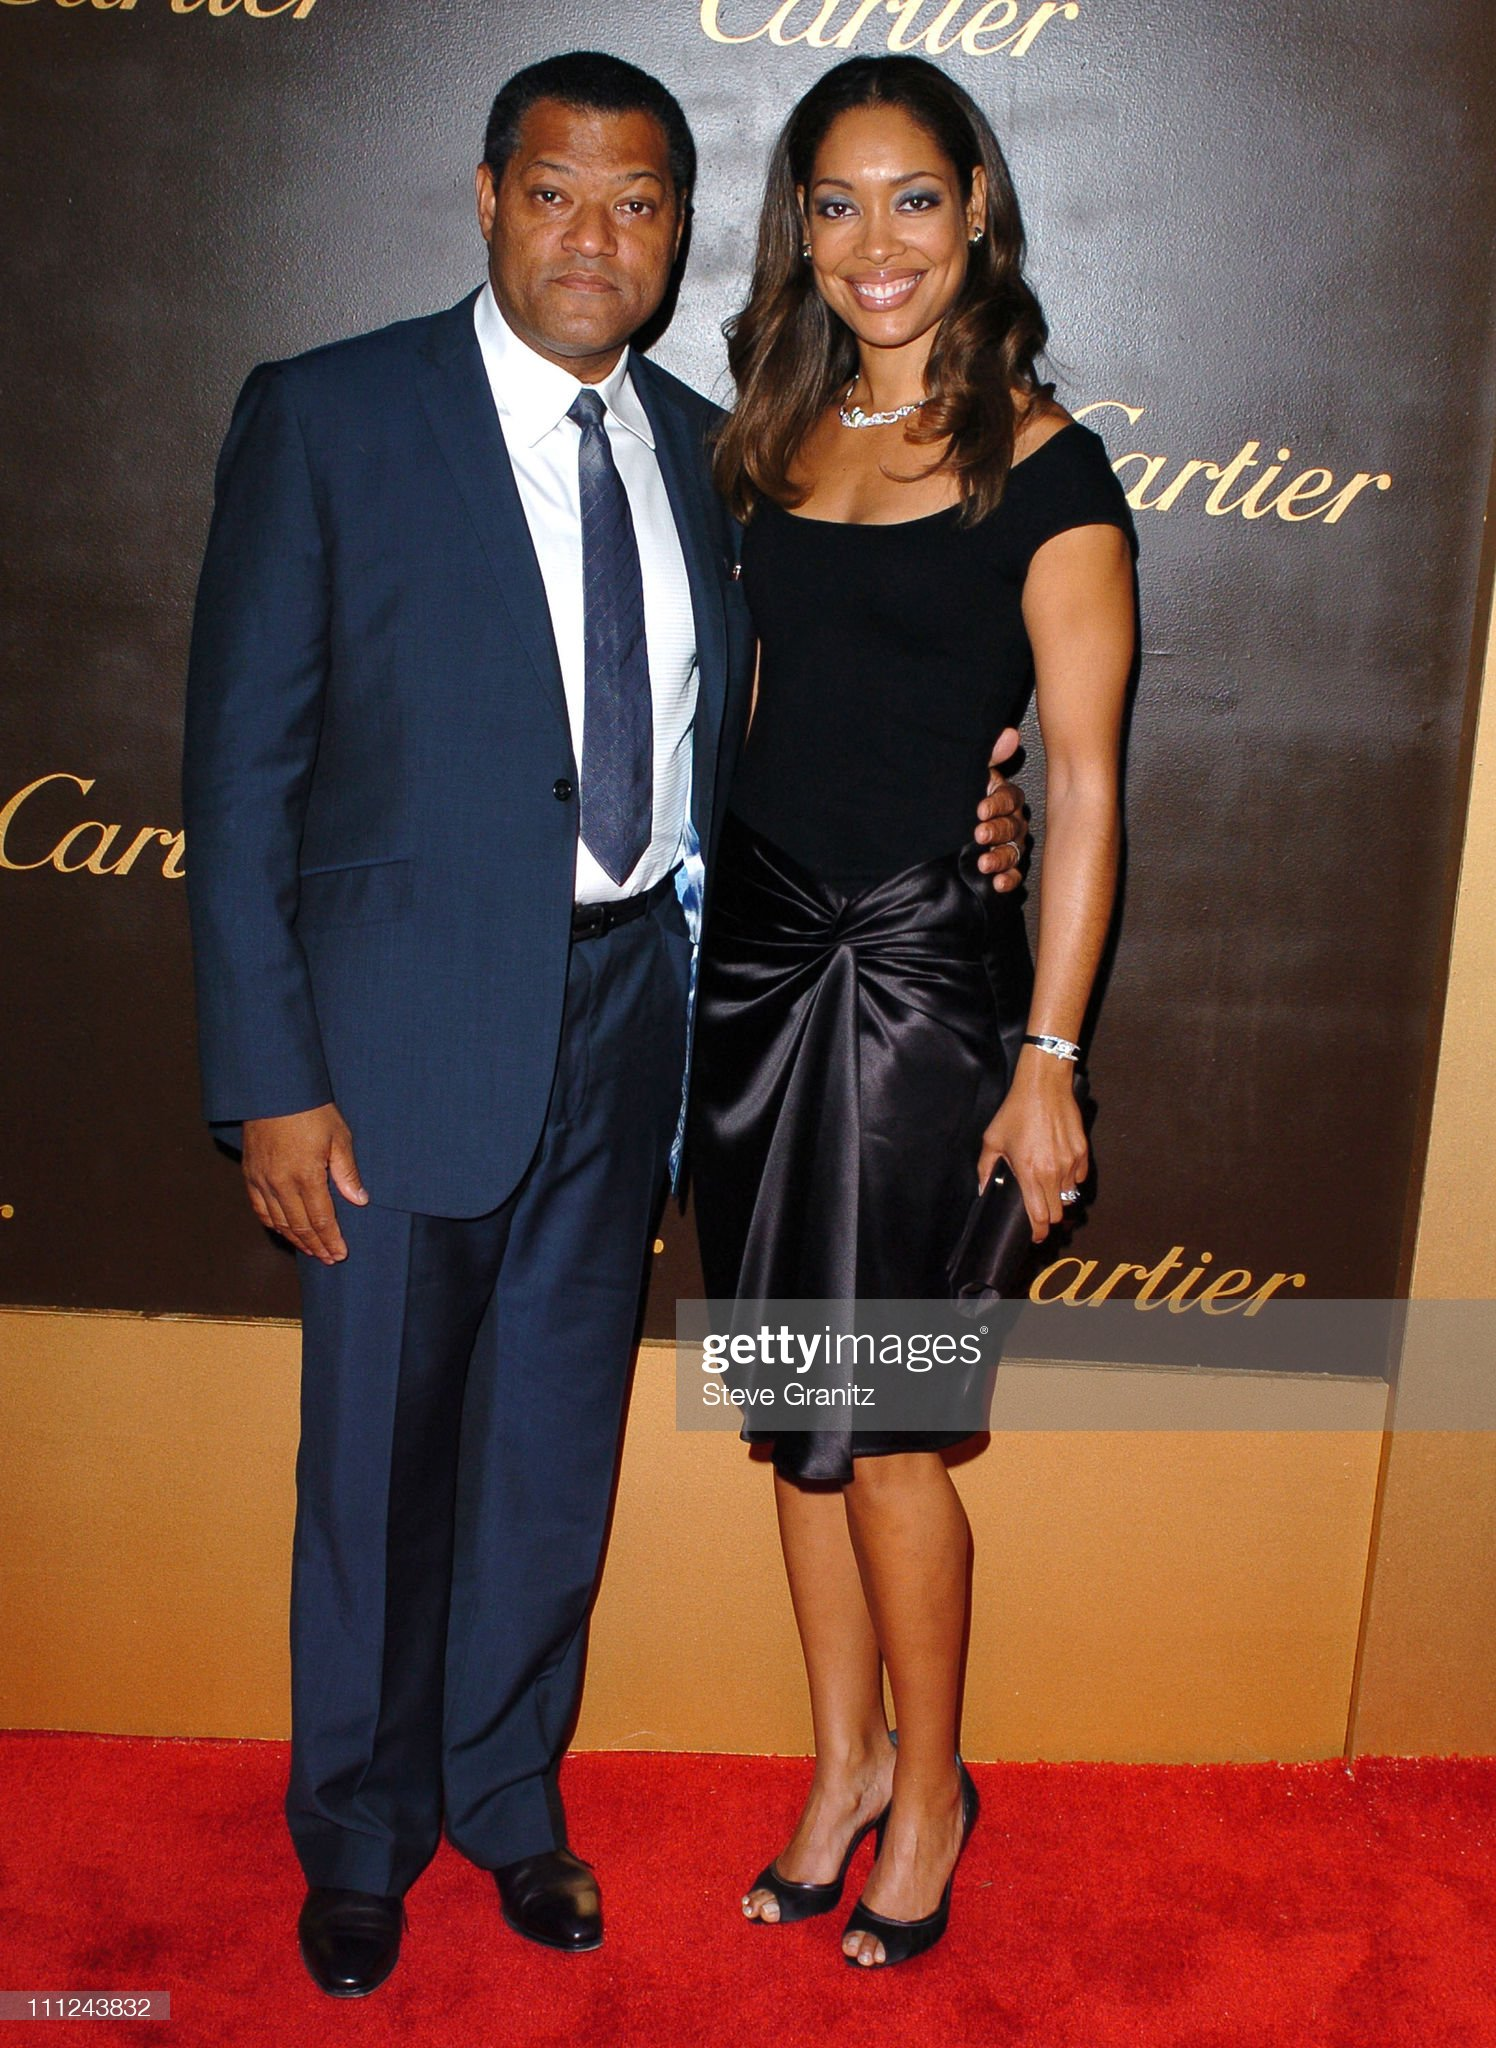 ¿Cuánto mide Laurence Fishburne? - Real height Laurence-fishburne-and-gina-torres-during-cartier-celebrates-25-years-picture-id111243832?s=2048x2048